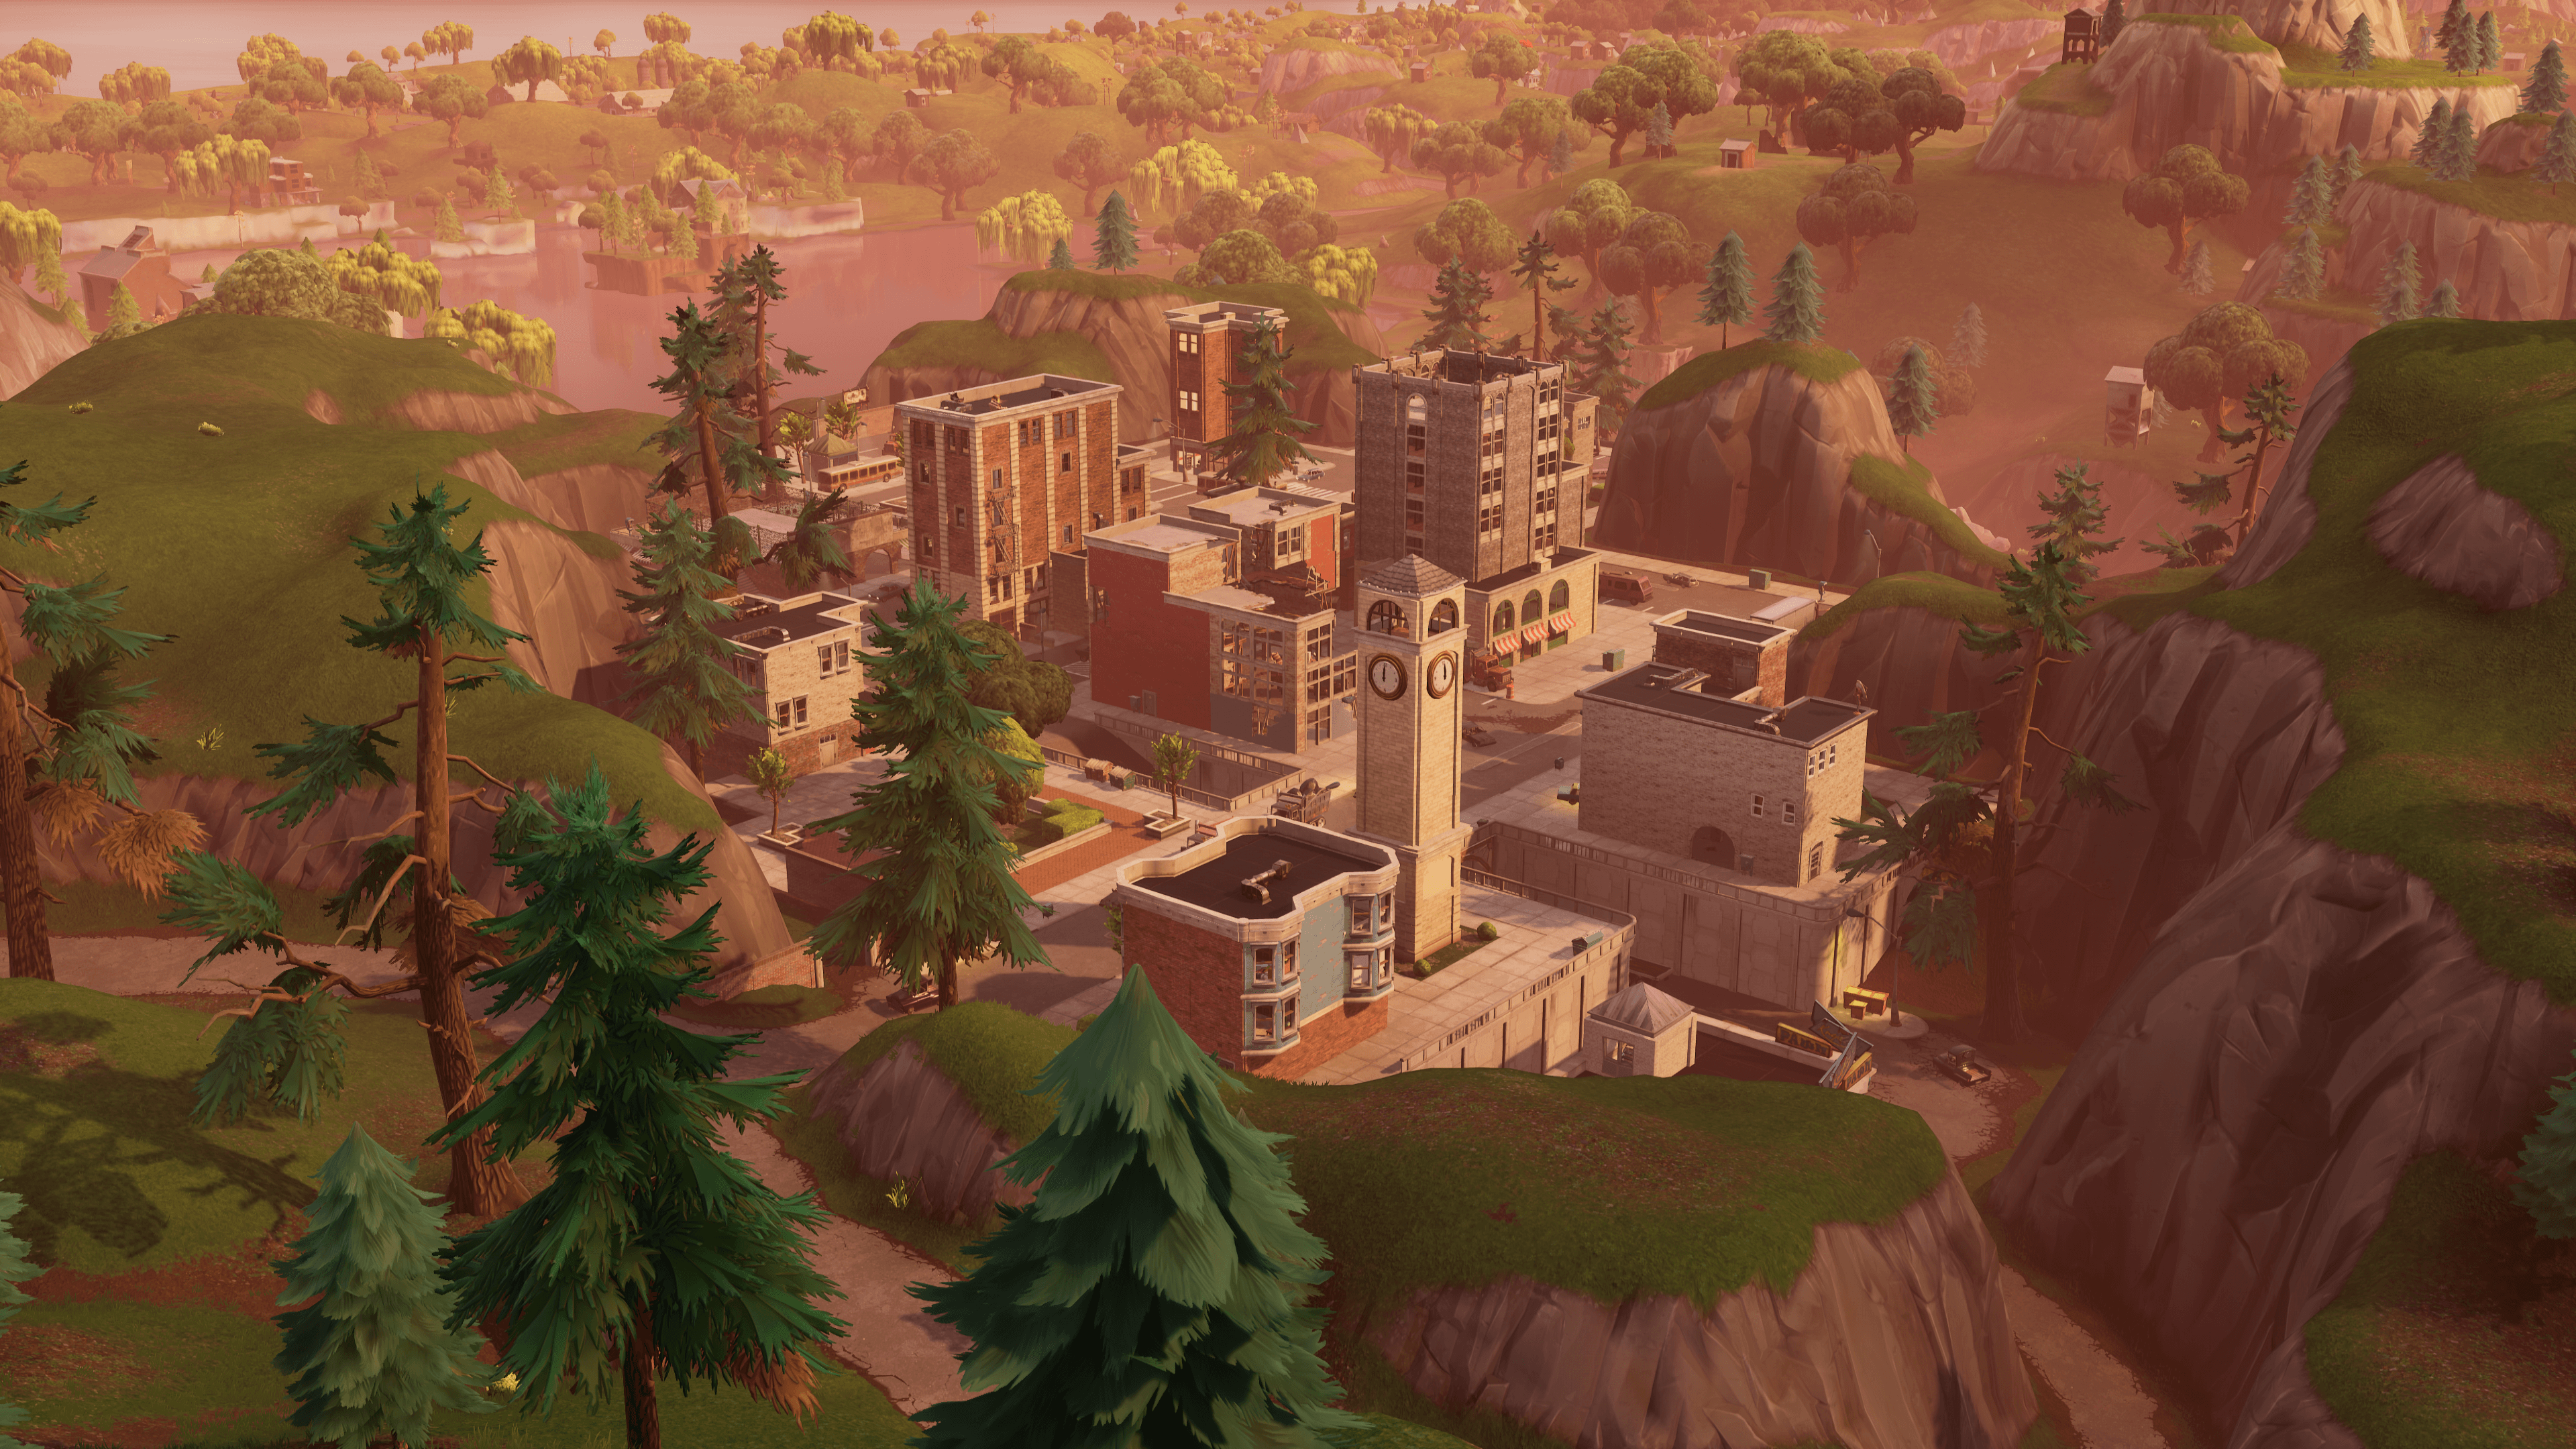 Fortnite Tilted Towers 4k Ultra HD Wallpaper | Background Image ...